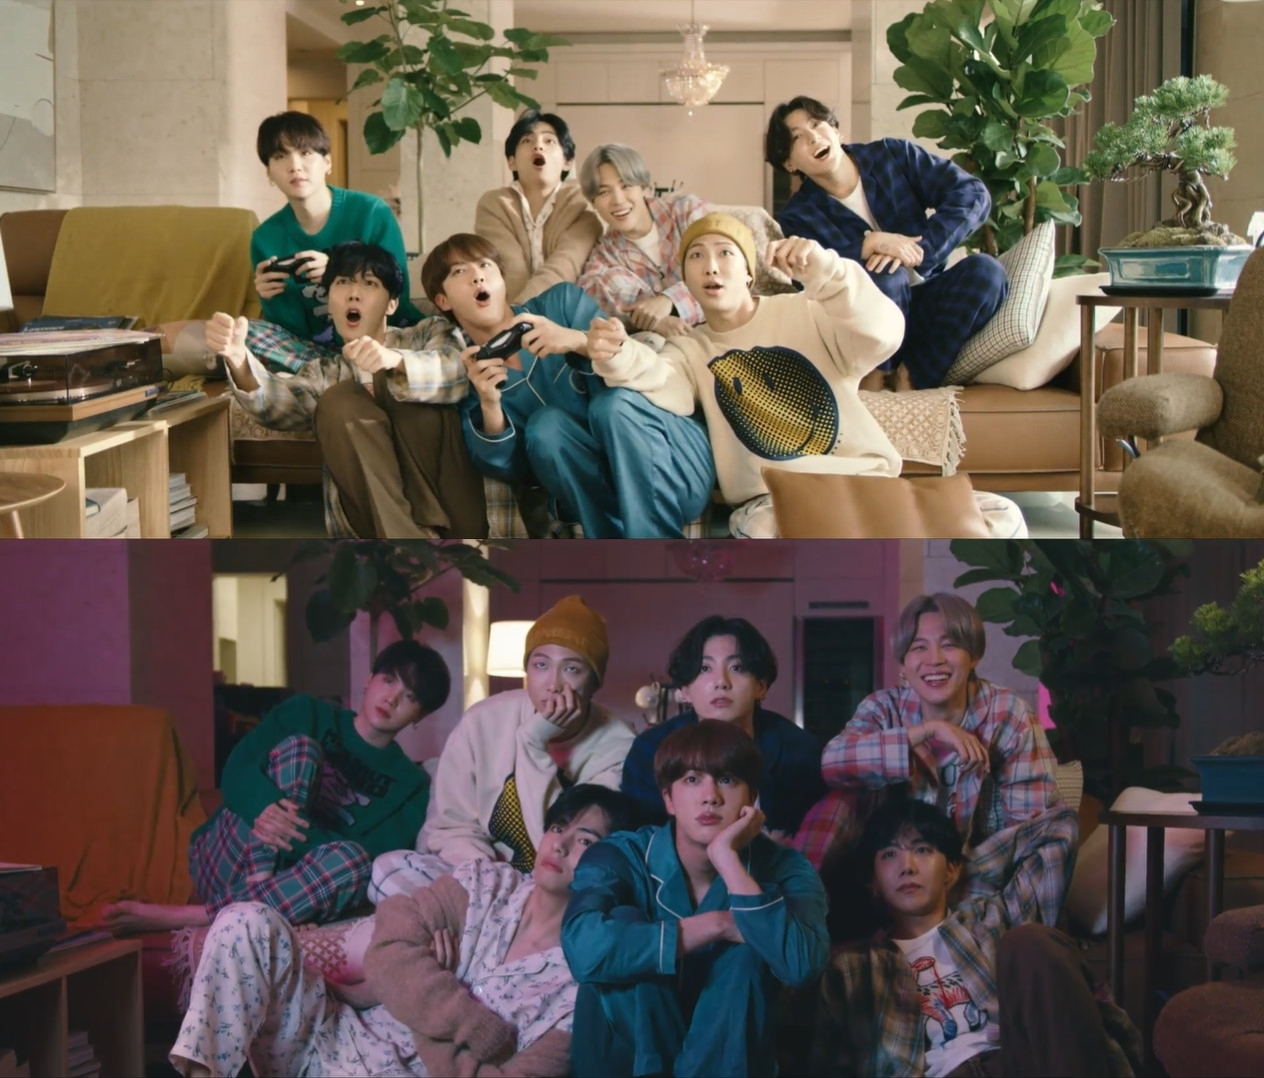 A scene of music video for the latest BTS song